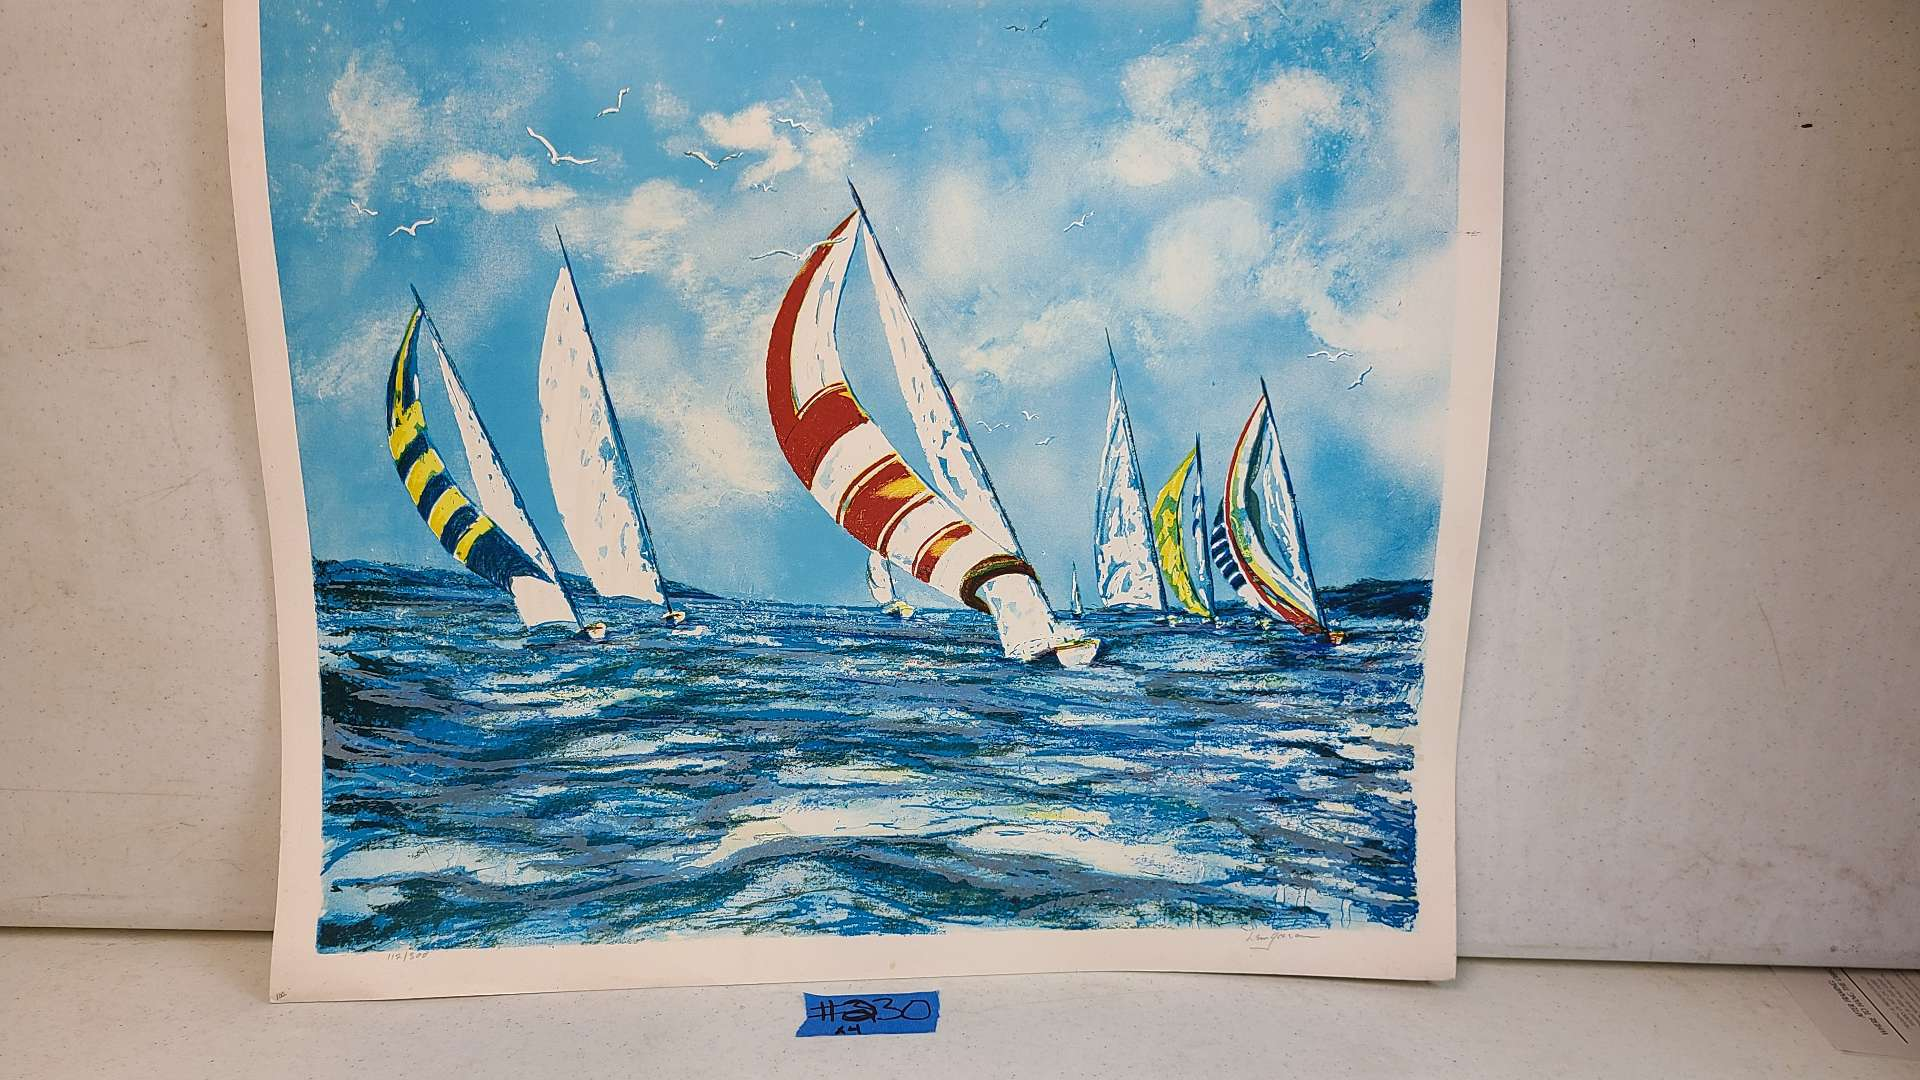 Lot # 230 Signed & Numbered Boat Lithograph (X4)